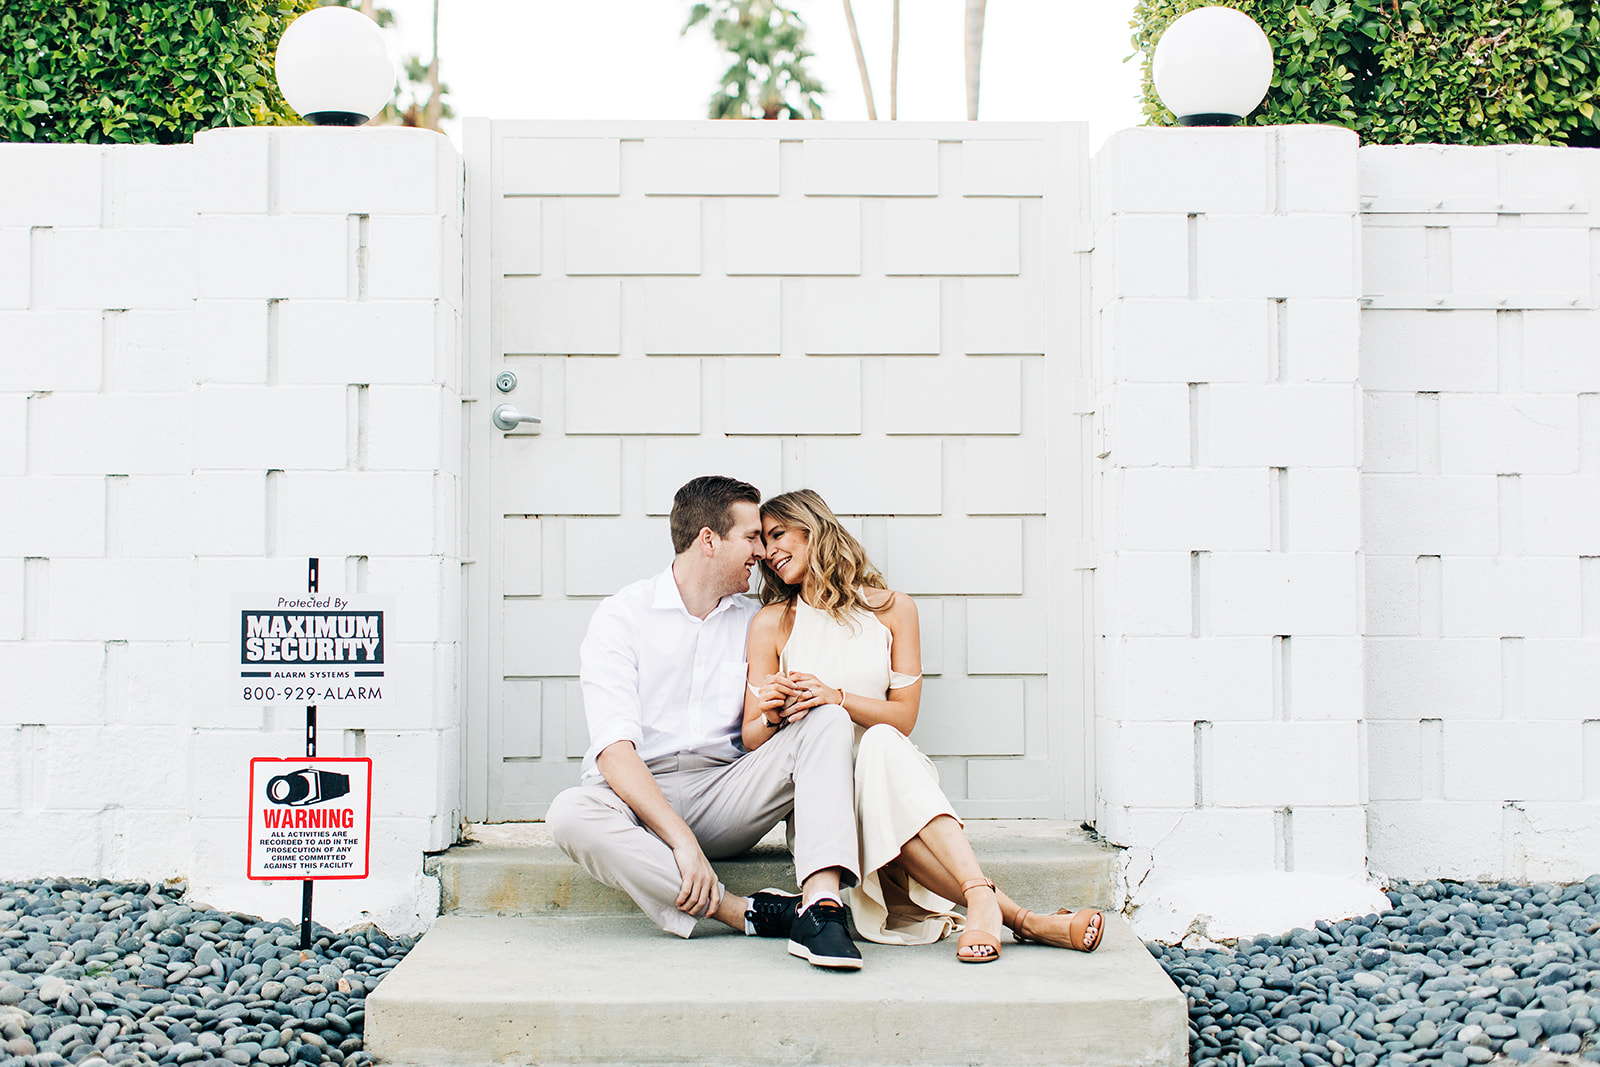 Paulina-Drew_Palm-Springs-Engagement-Photos_Clarisse-Rae_Southern-California-Wedding-Photographer-21